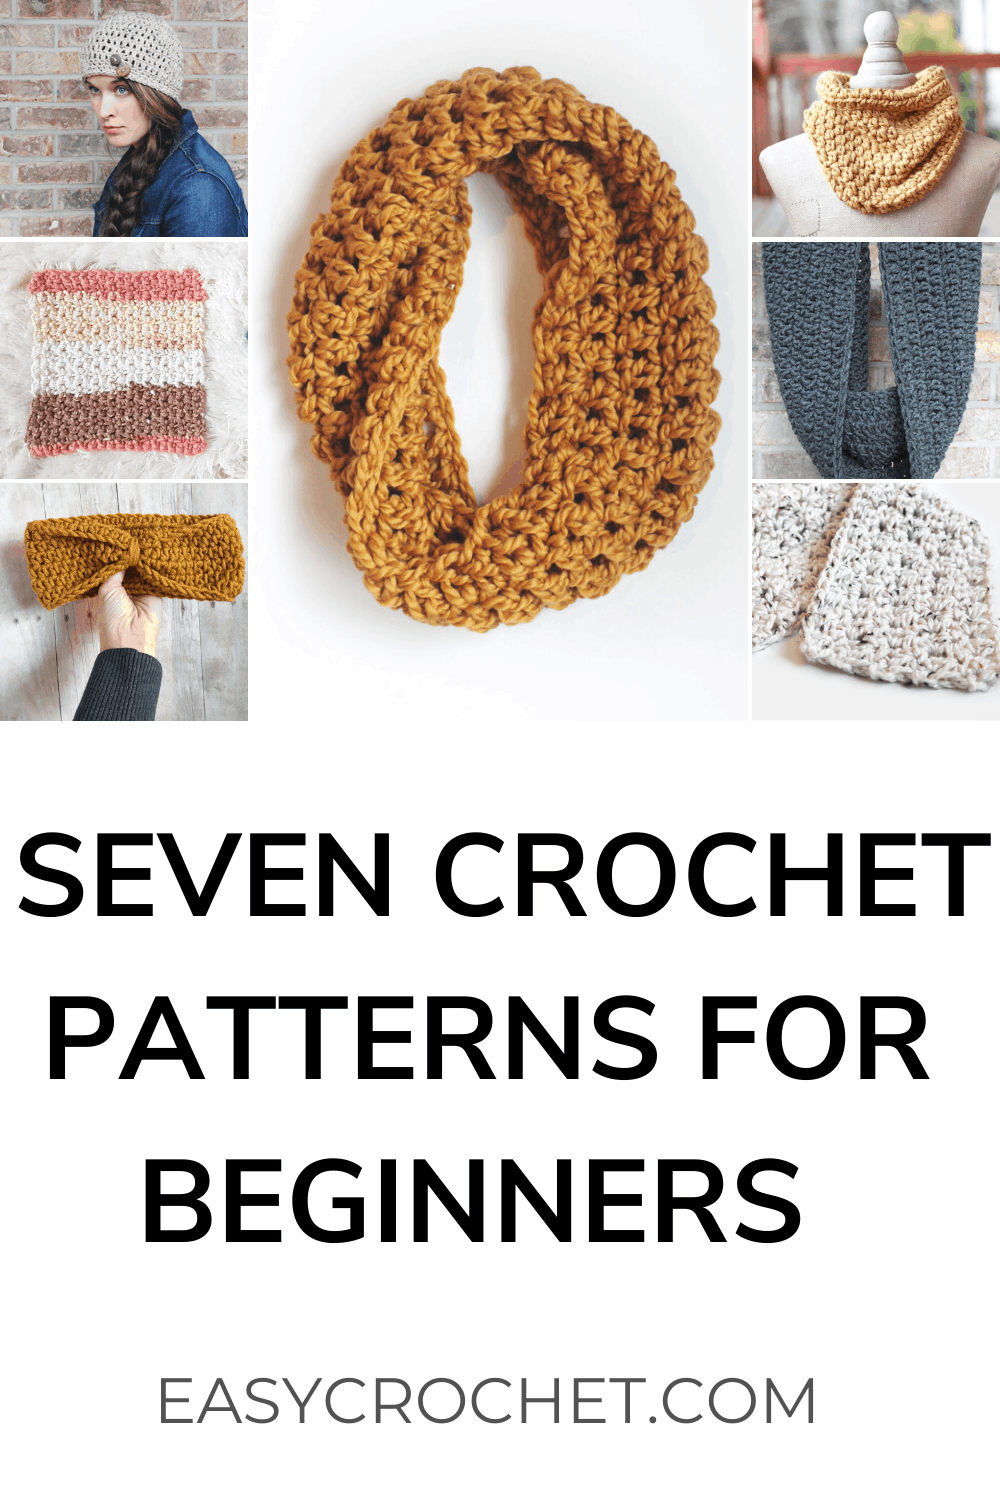 Free and Easy Crochet patterns for Beginners